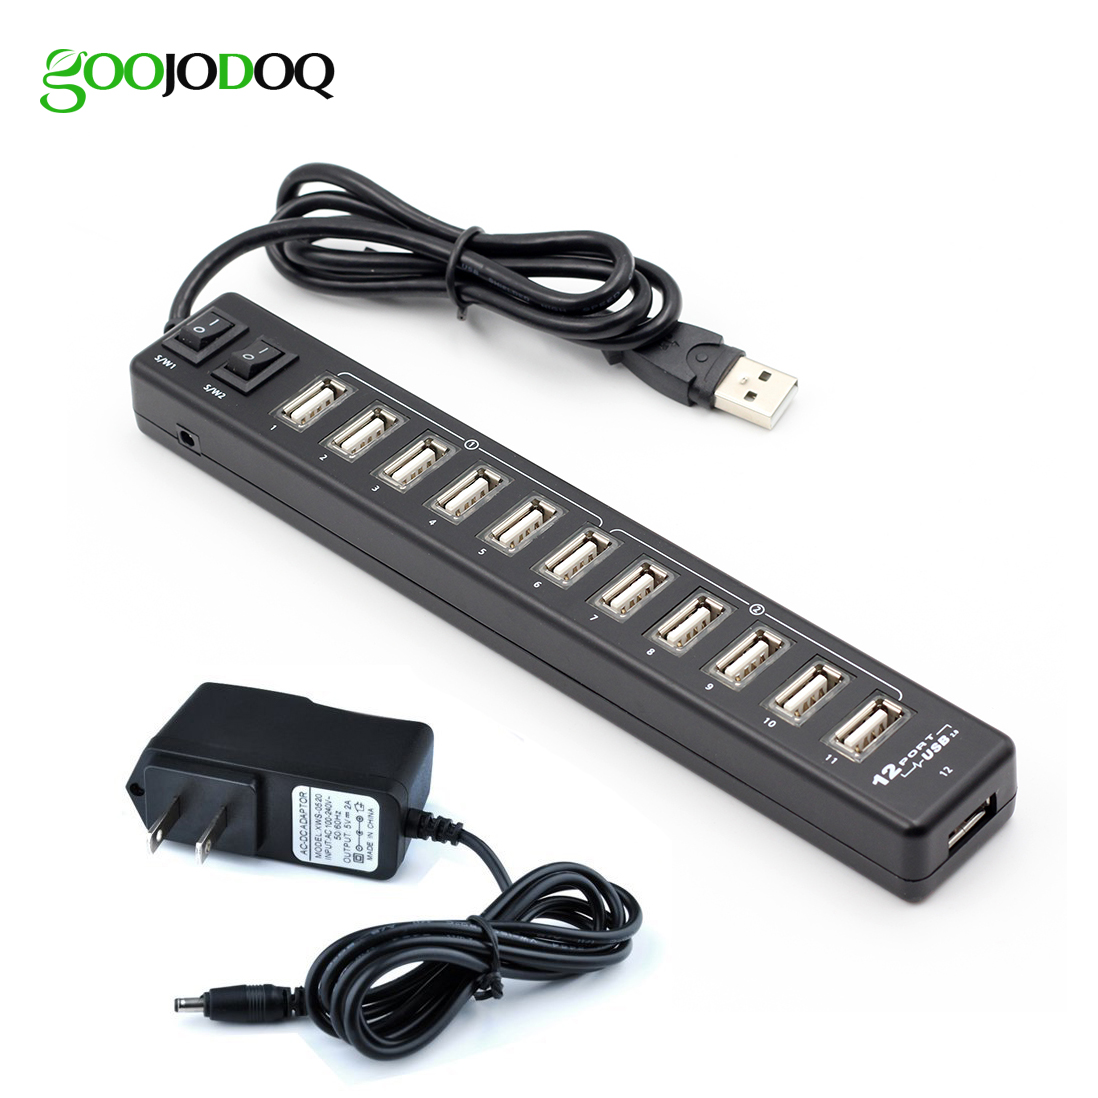 GOOJODOQ High Quality 12 Ports USB 2.0 Hub With 2 Switch For Laptop PC + Power Adapter Supports Hot Swapping